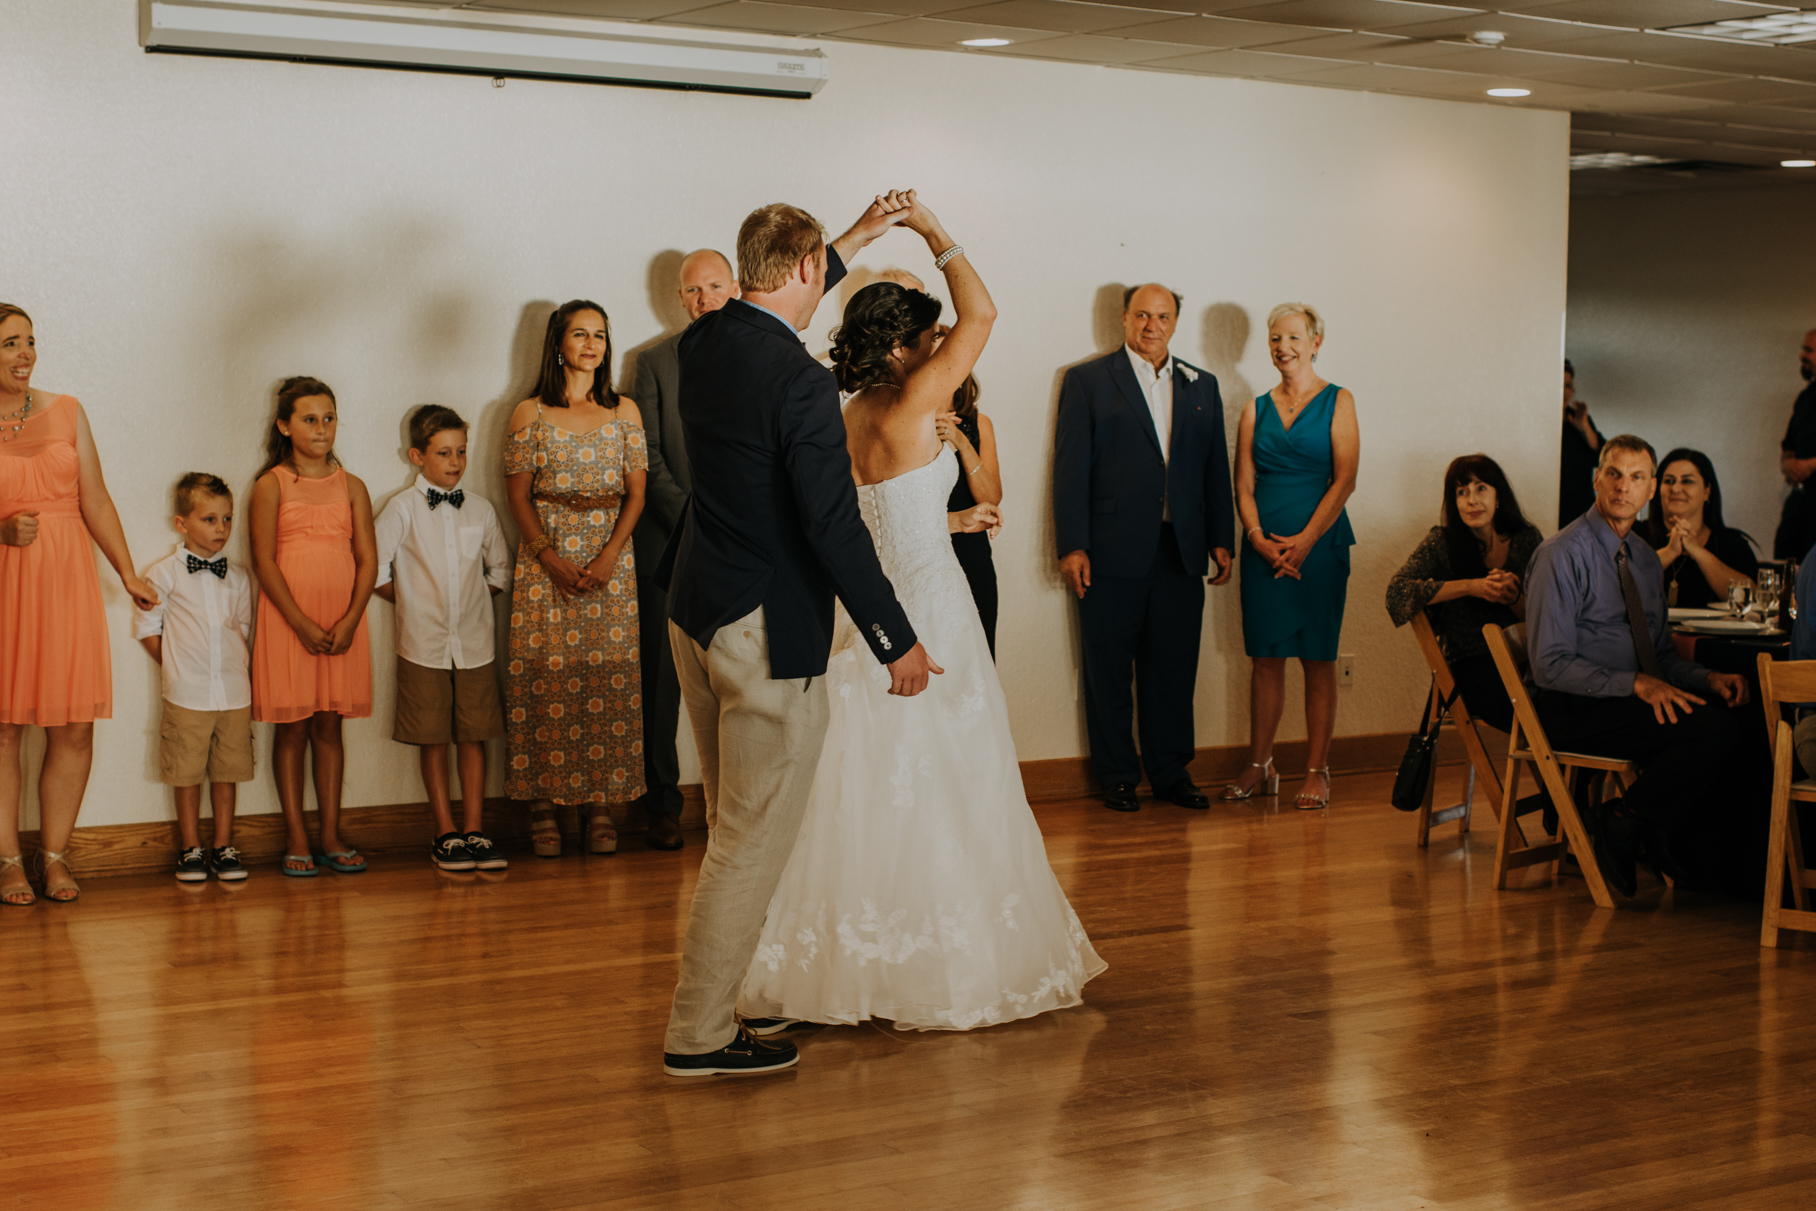 fort desoto wedding   tampa wedding photography   freehearted film co